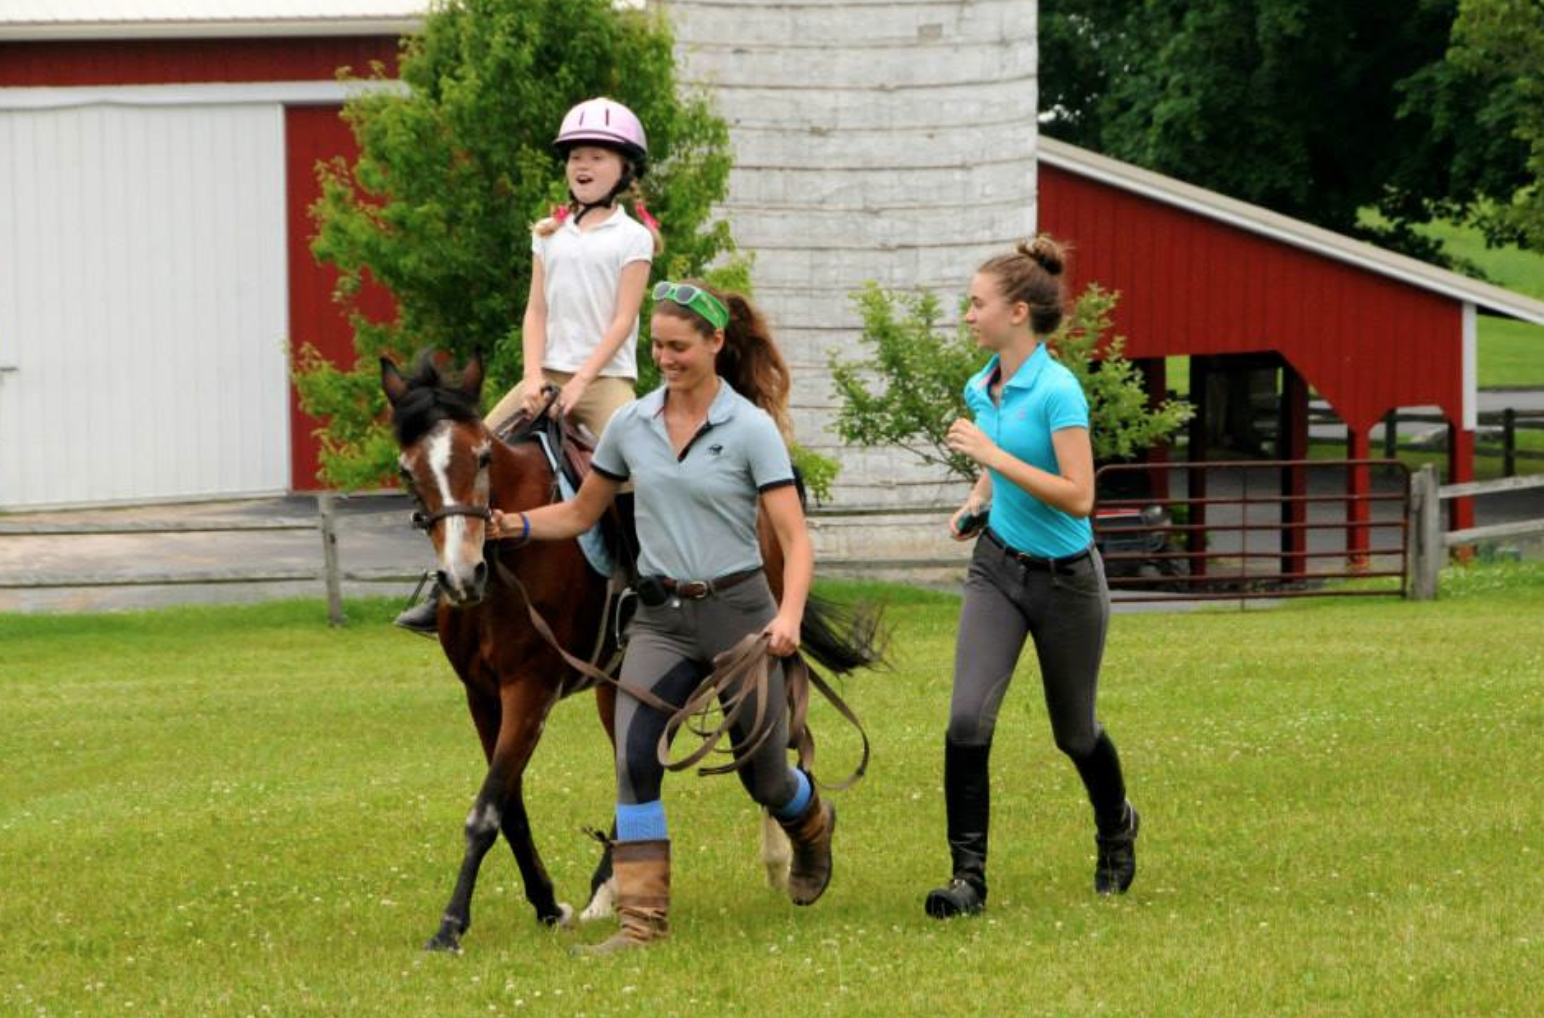 Upper level members teach younger members the basics of riding and horse care. Photo by Gillian Warner.